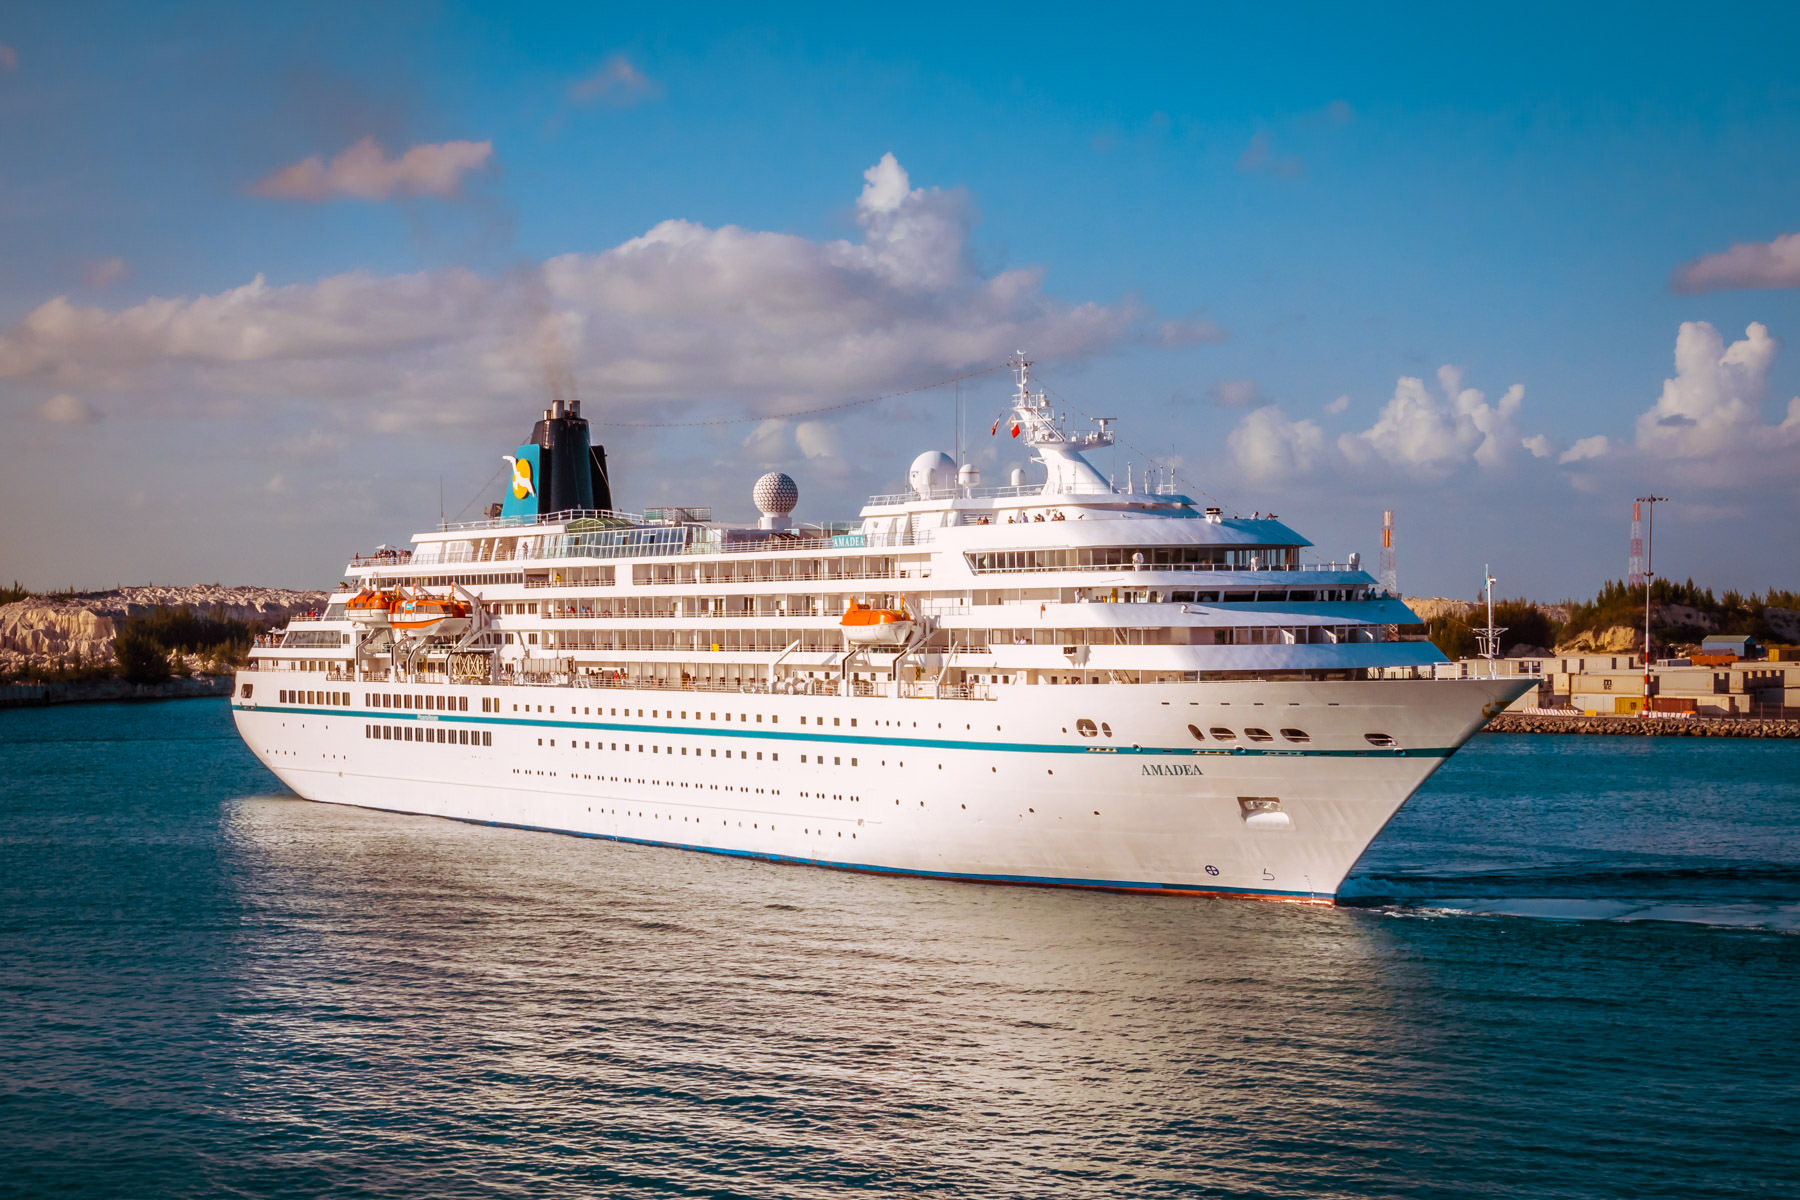 The MSAmadea sets sail from Freeport Harbour in The Bahamas.